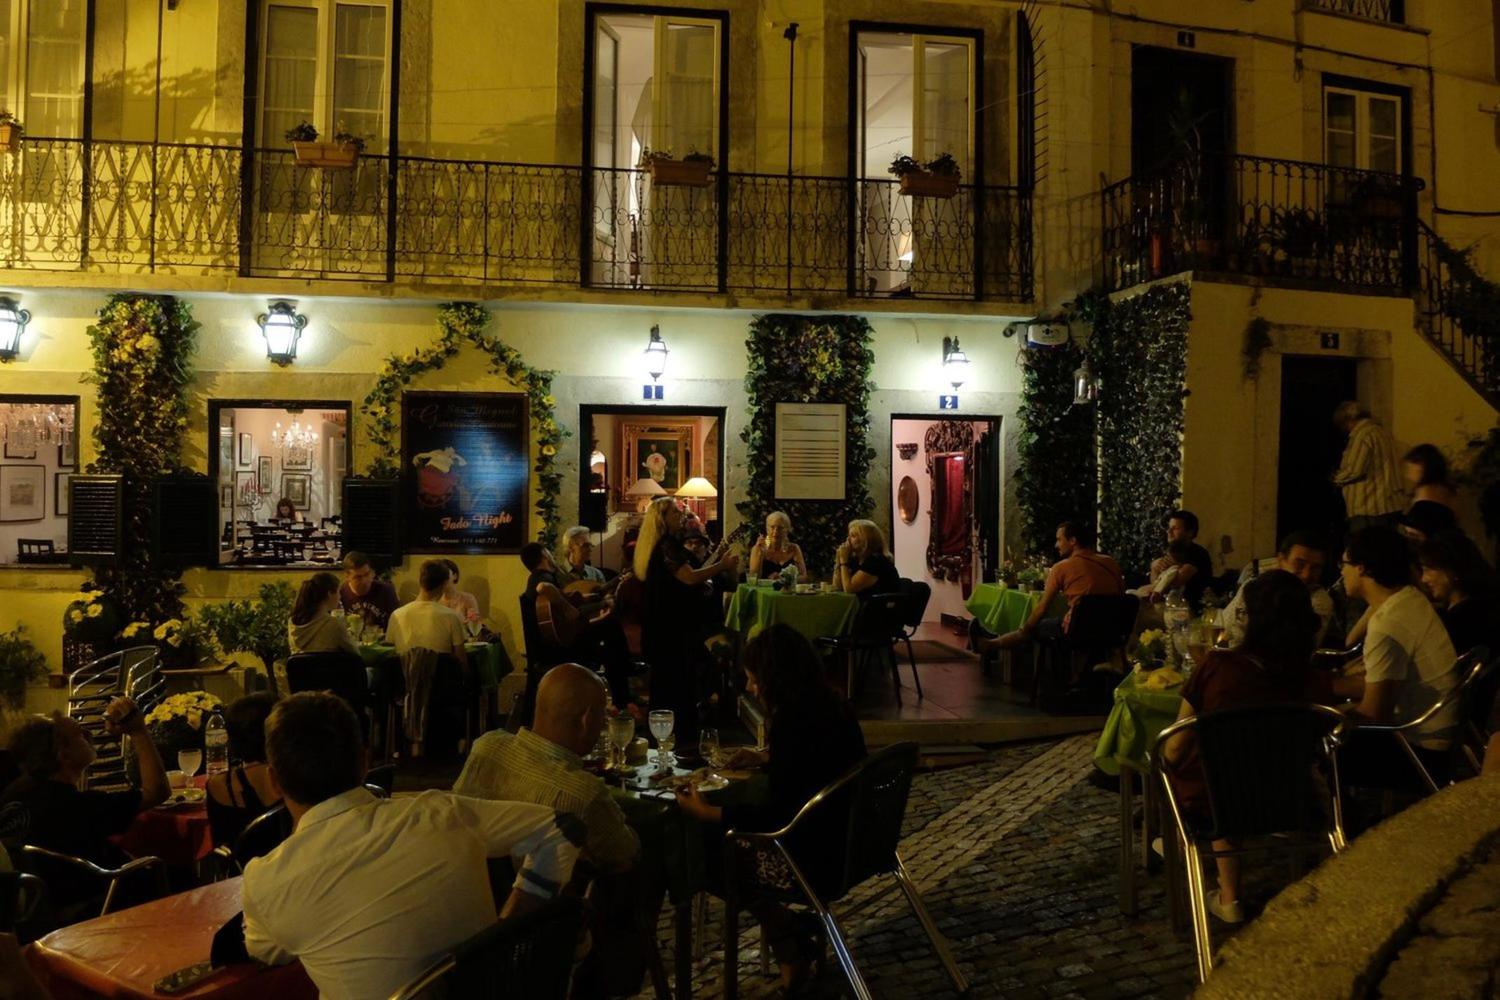 Fado night show in the Alfama neighborhood